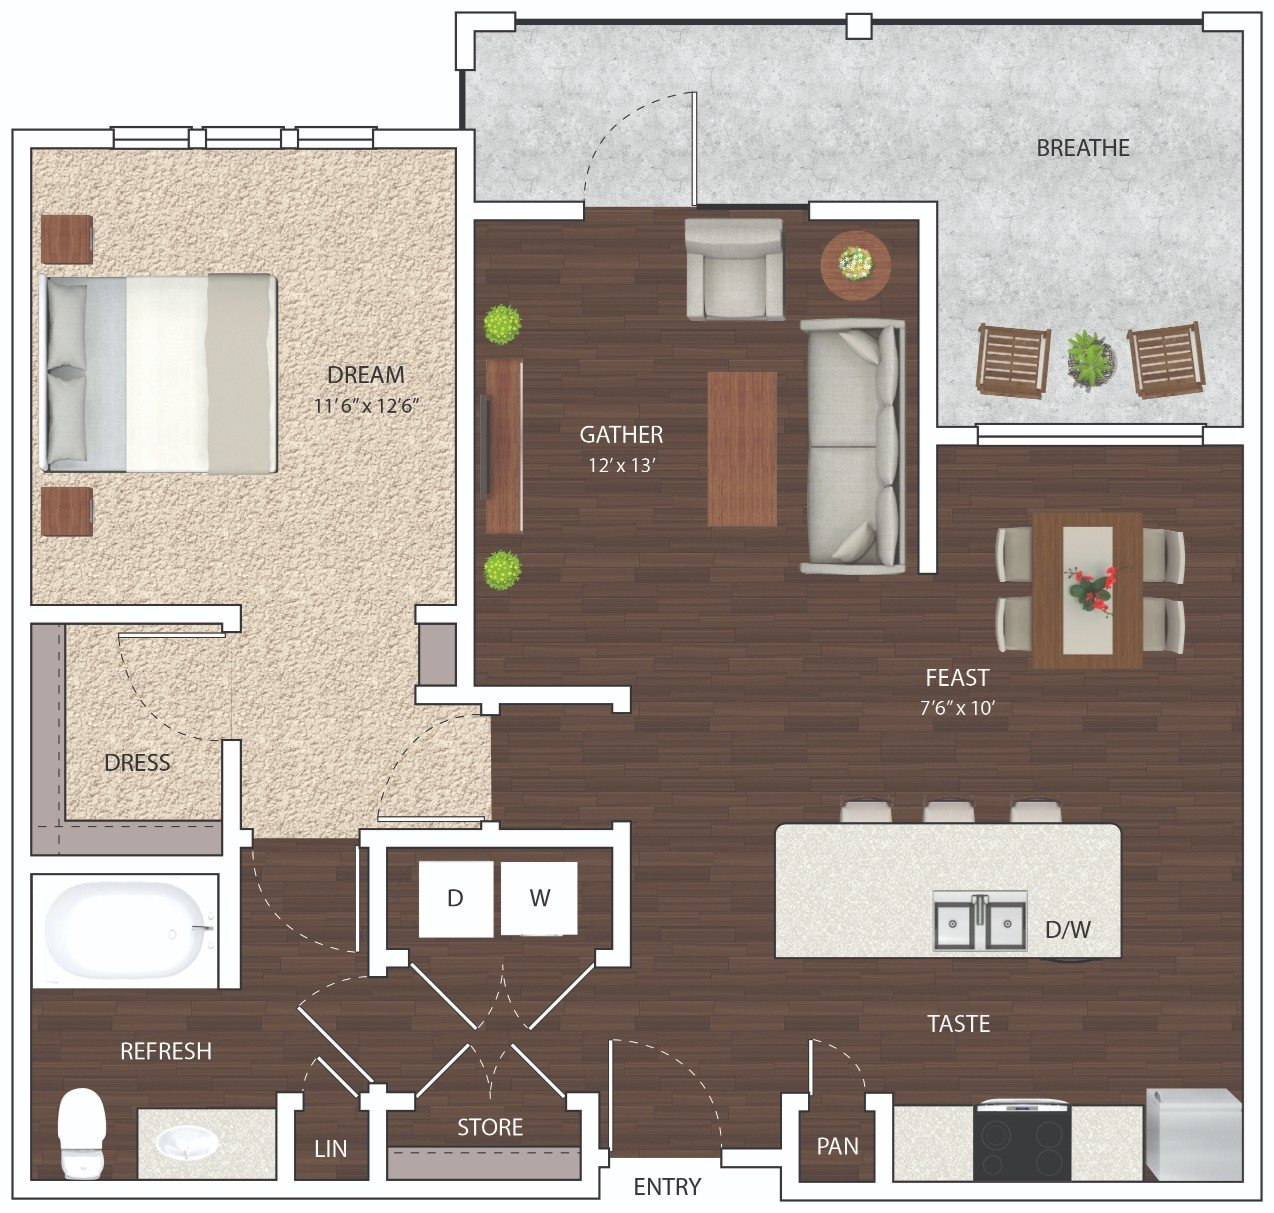 A3 - Phase I Floor Plan 5